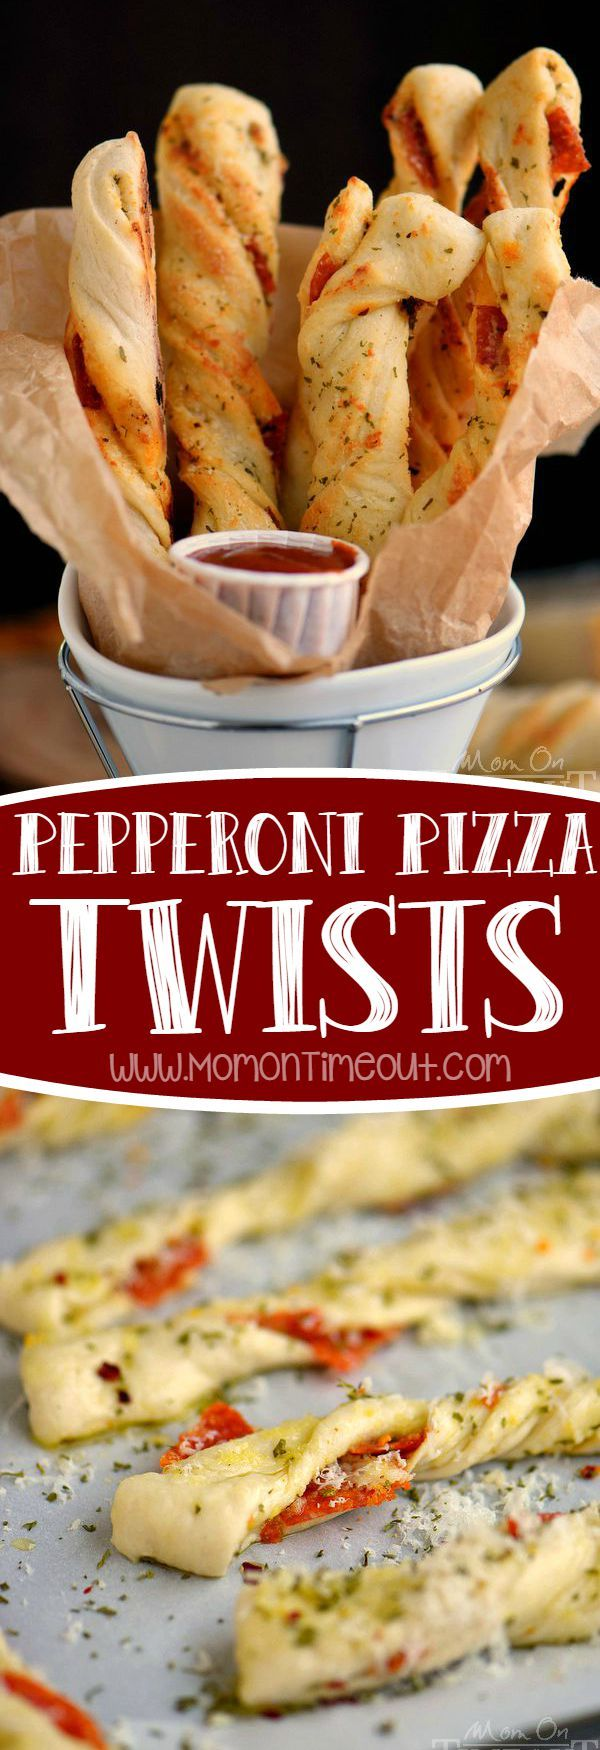 Perfect for game day celebrations or a fun, kid-friendly dinner, these Pepperoni Pizza Twists are guaranteed to become a new family favorite! Easy, cheesy, awesomeness!: